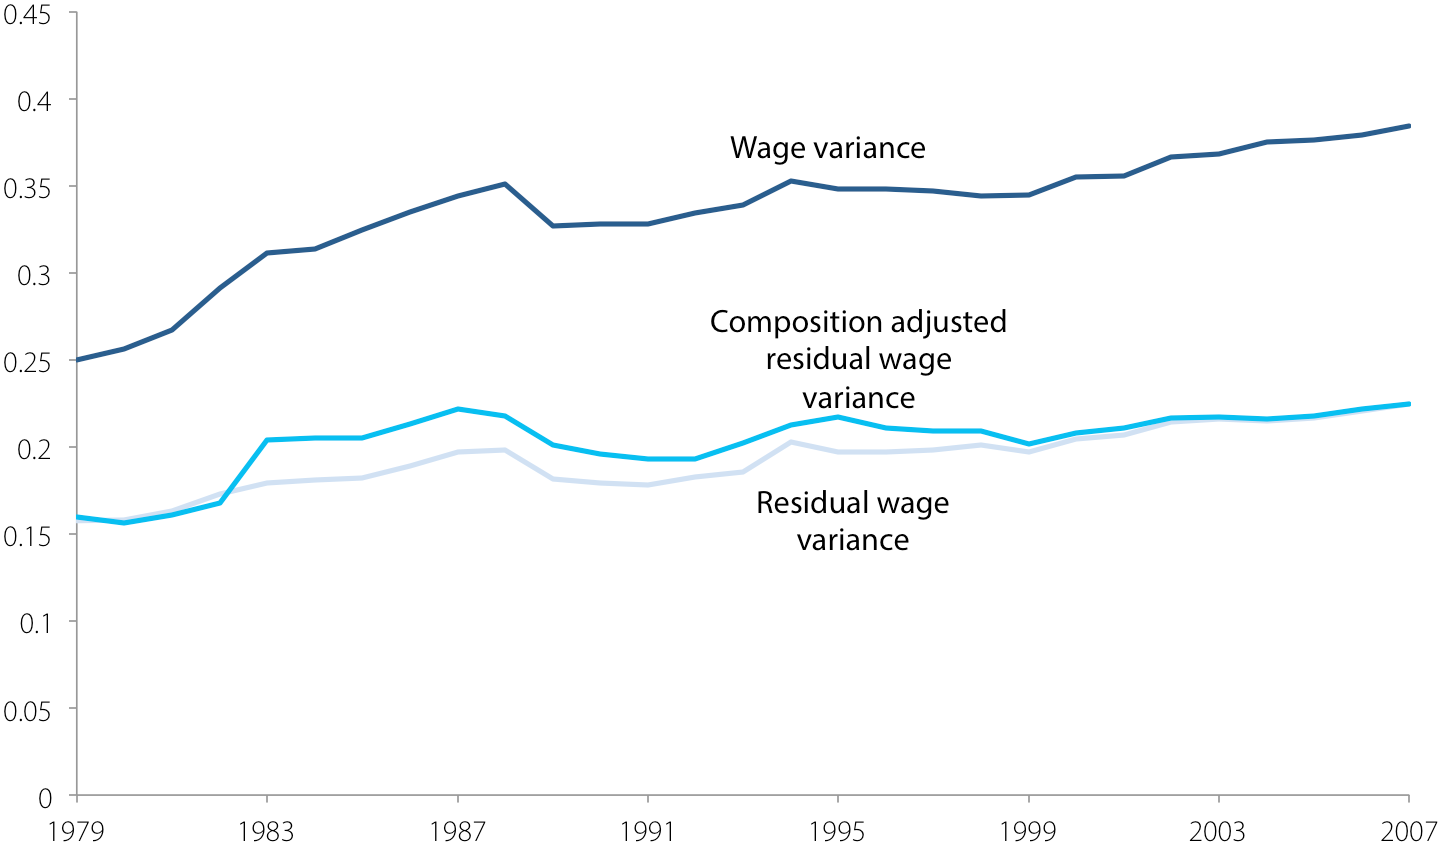 Wage variance, residual wage variance, and composition-adjusted residual wage variance for men, 1979–2007